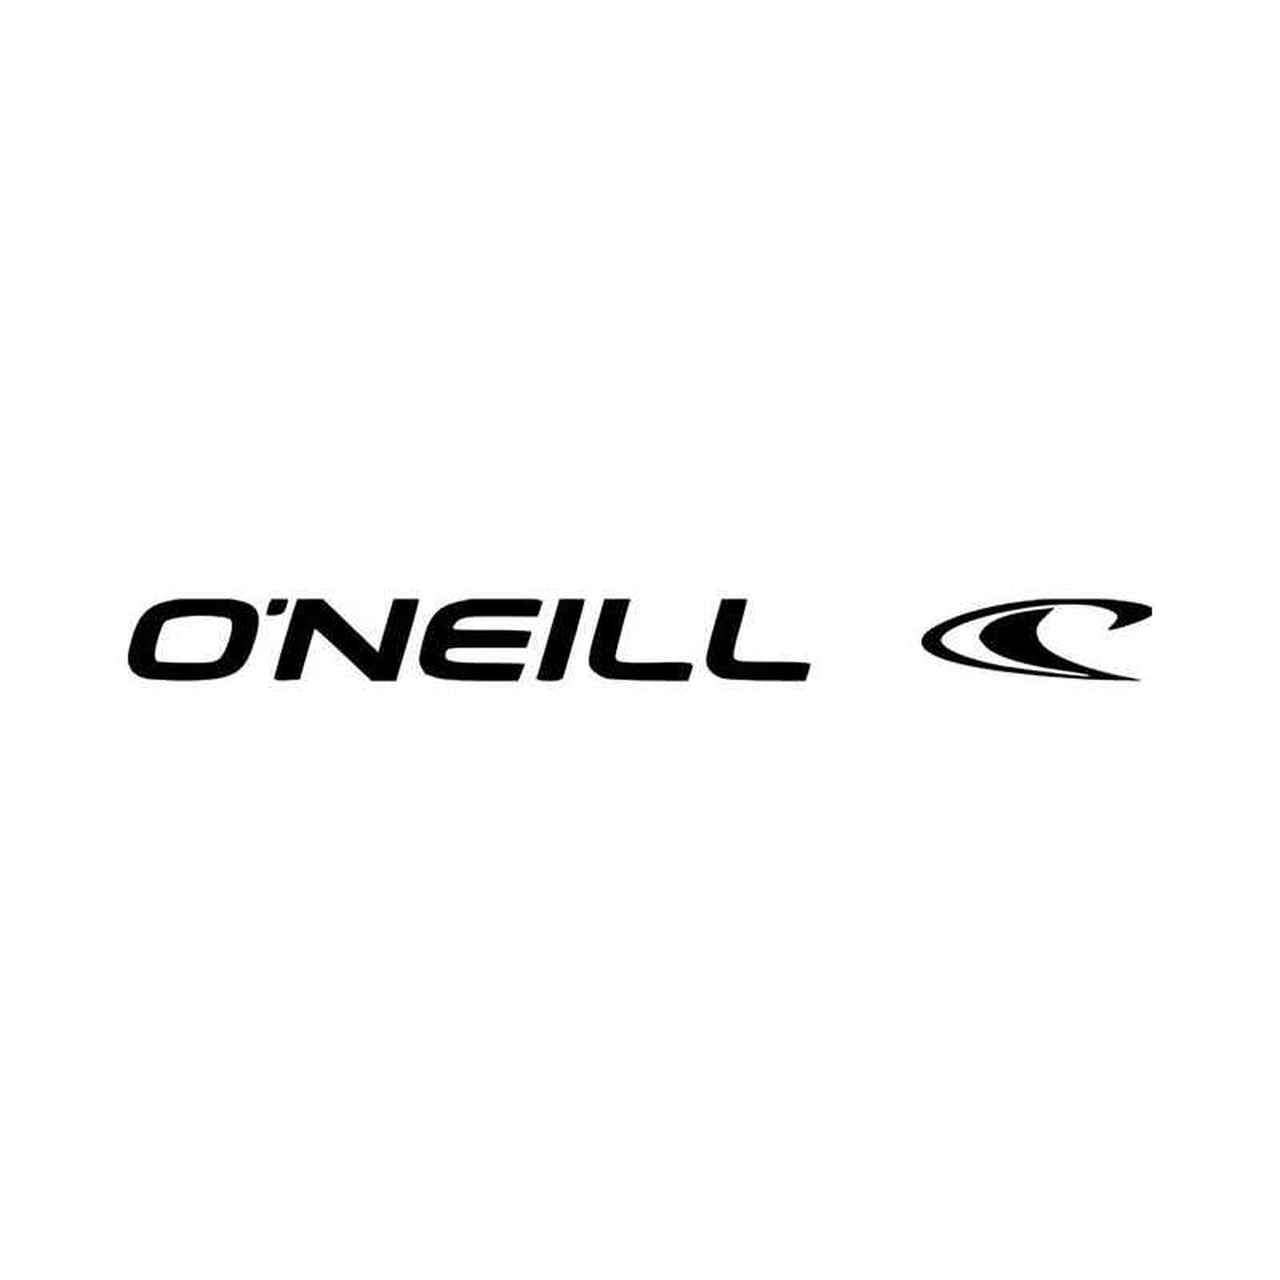 O\'neill Surfboard Logo Vinyl Decal Sticker.